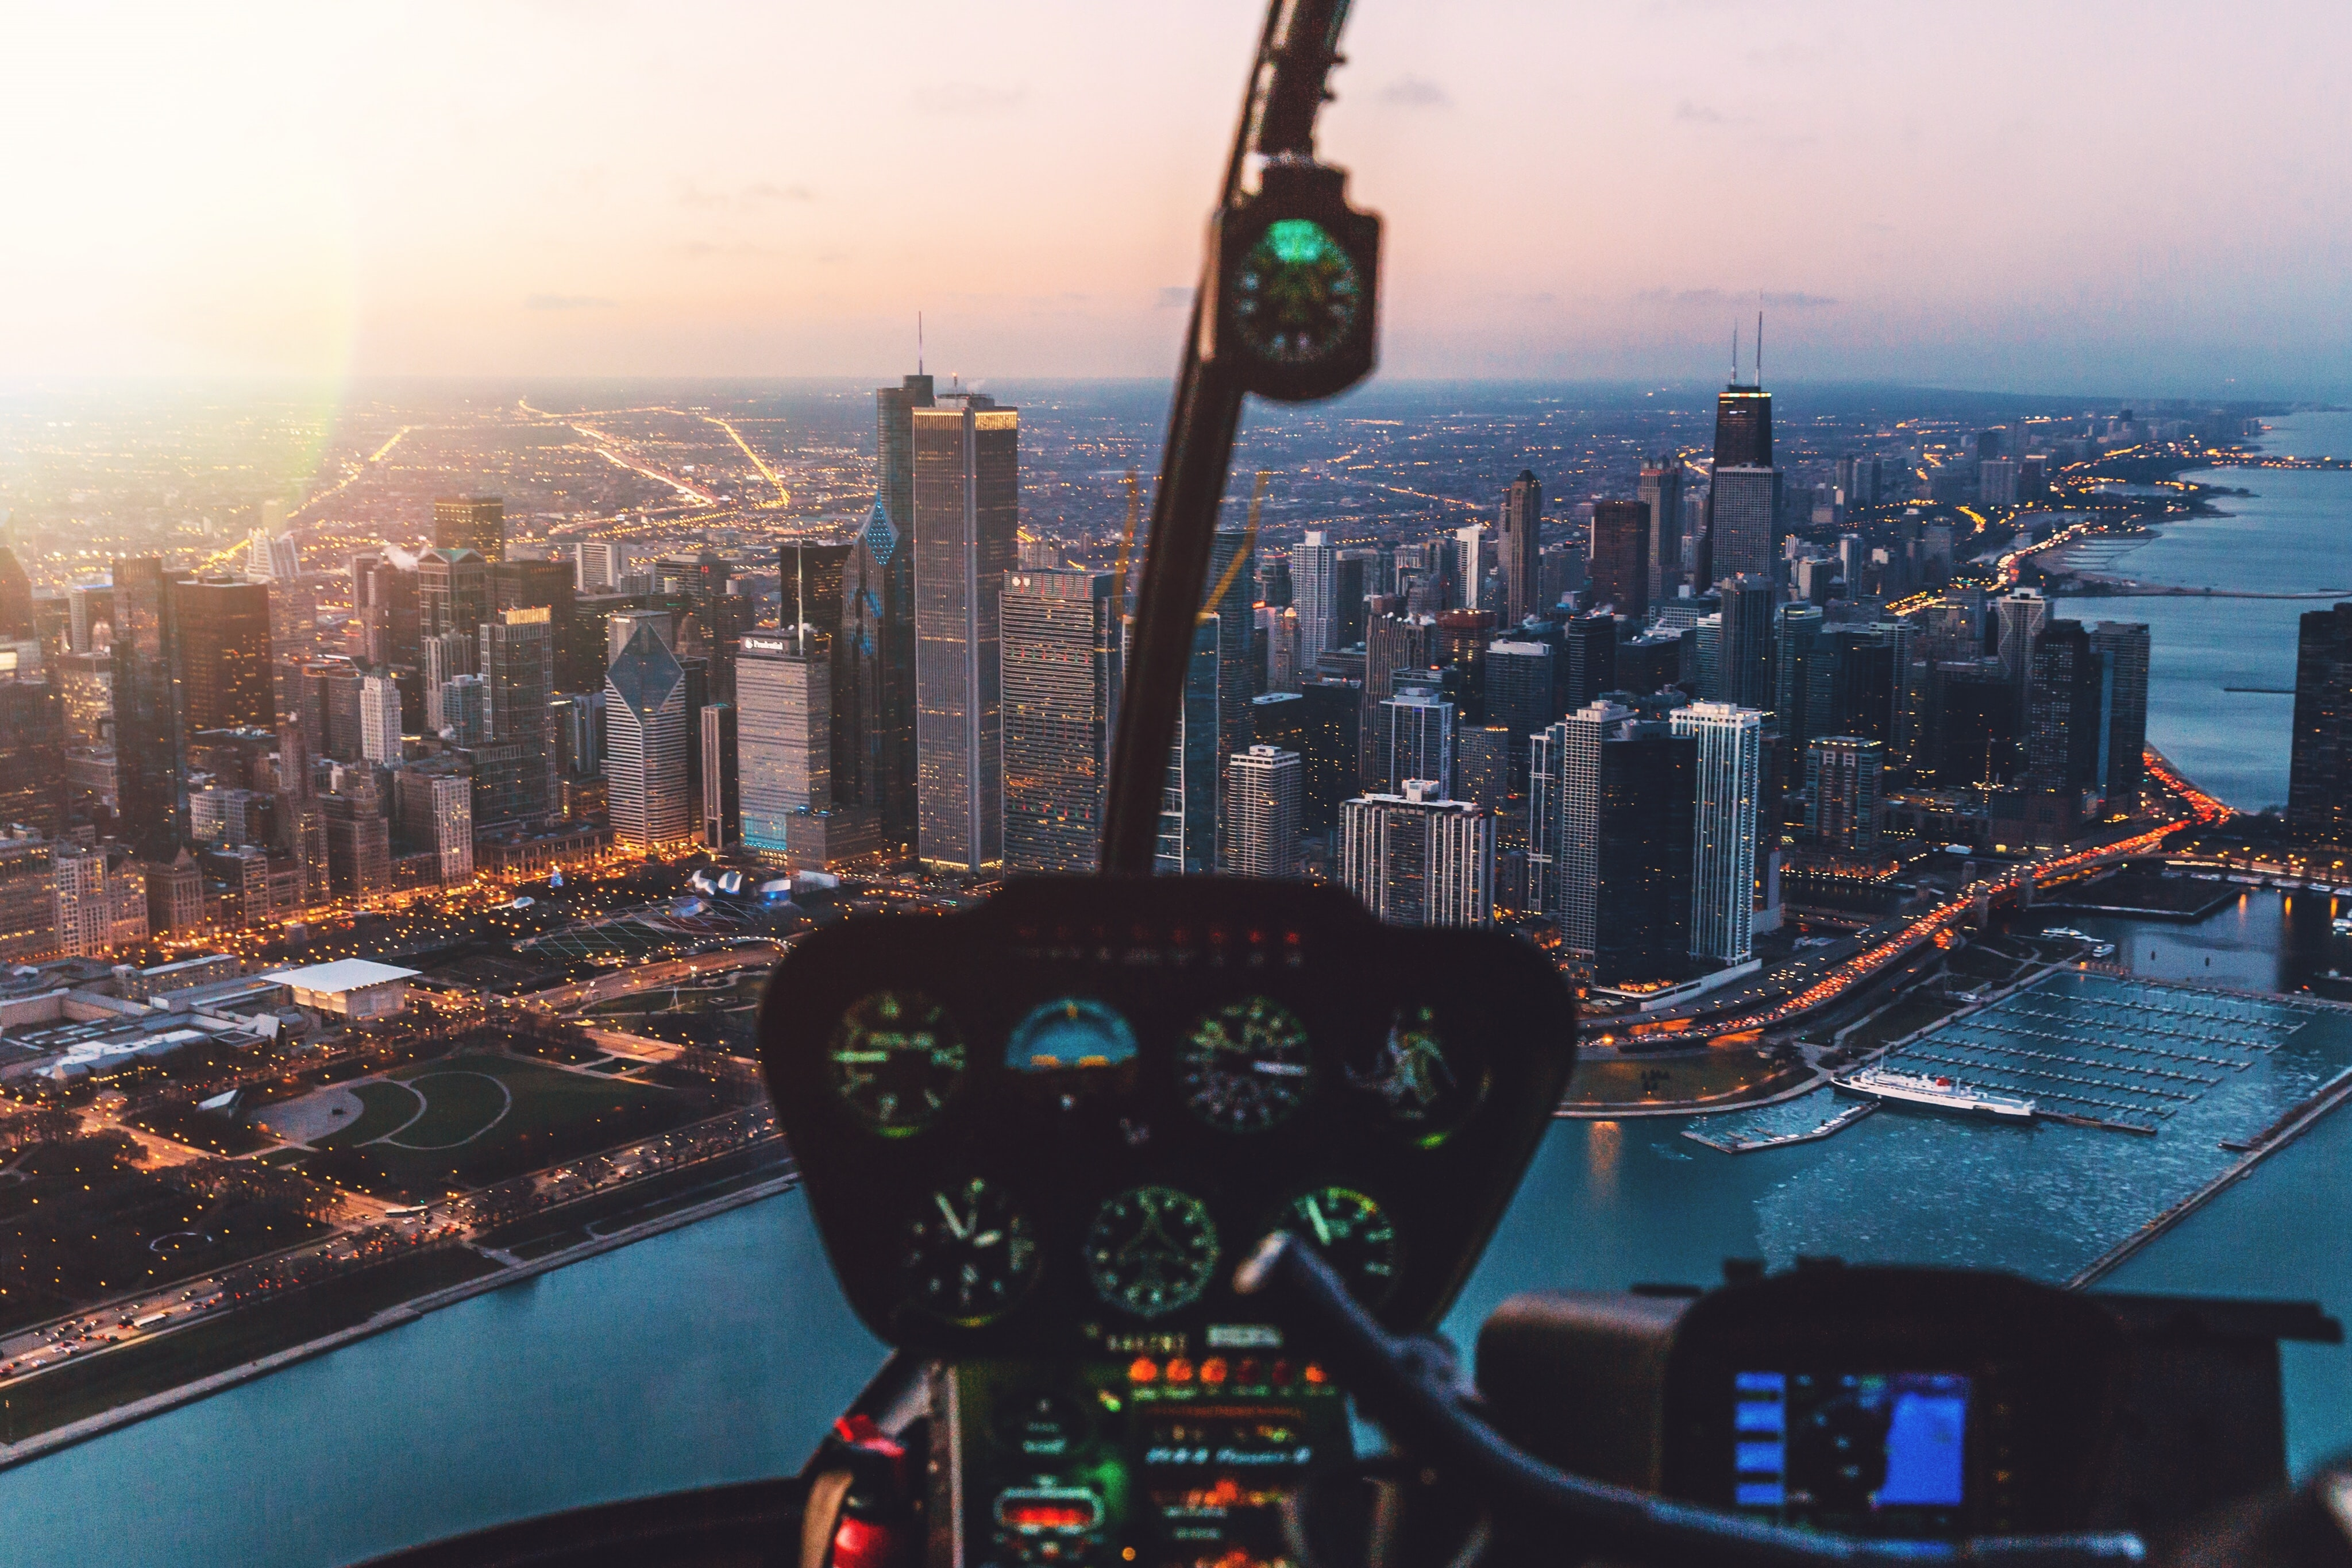 View from an airplane cockpit on the skyline of Chicago at night